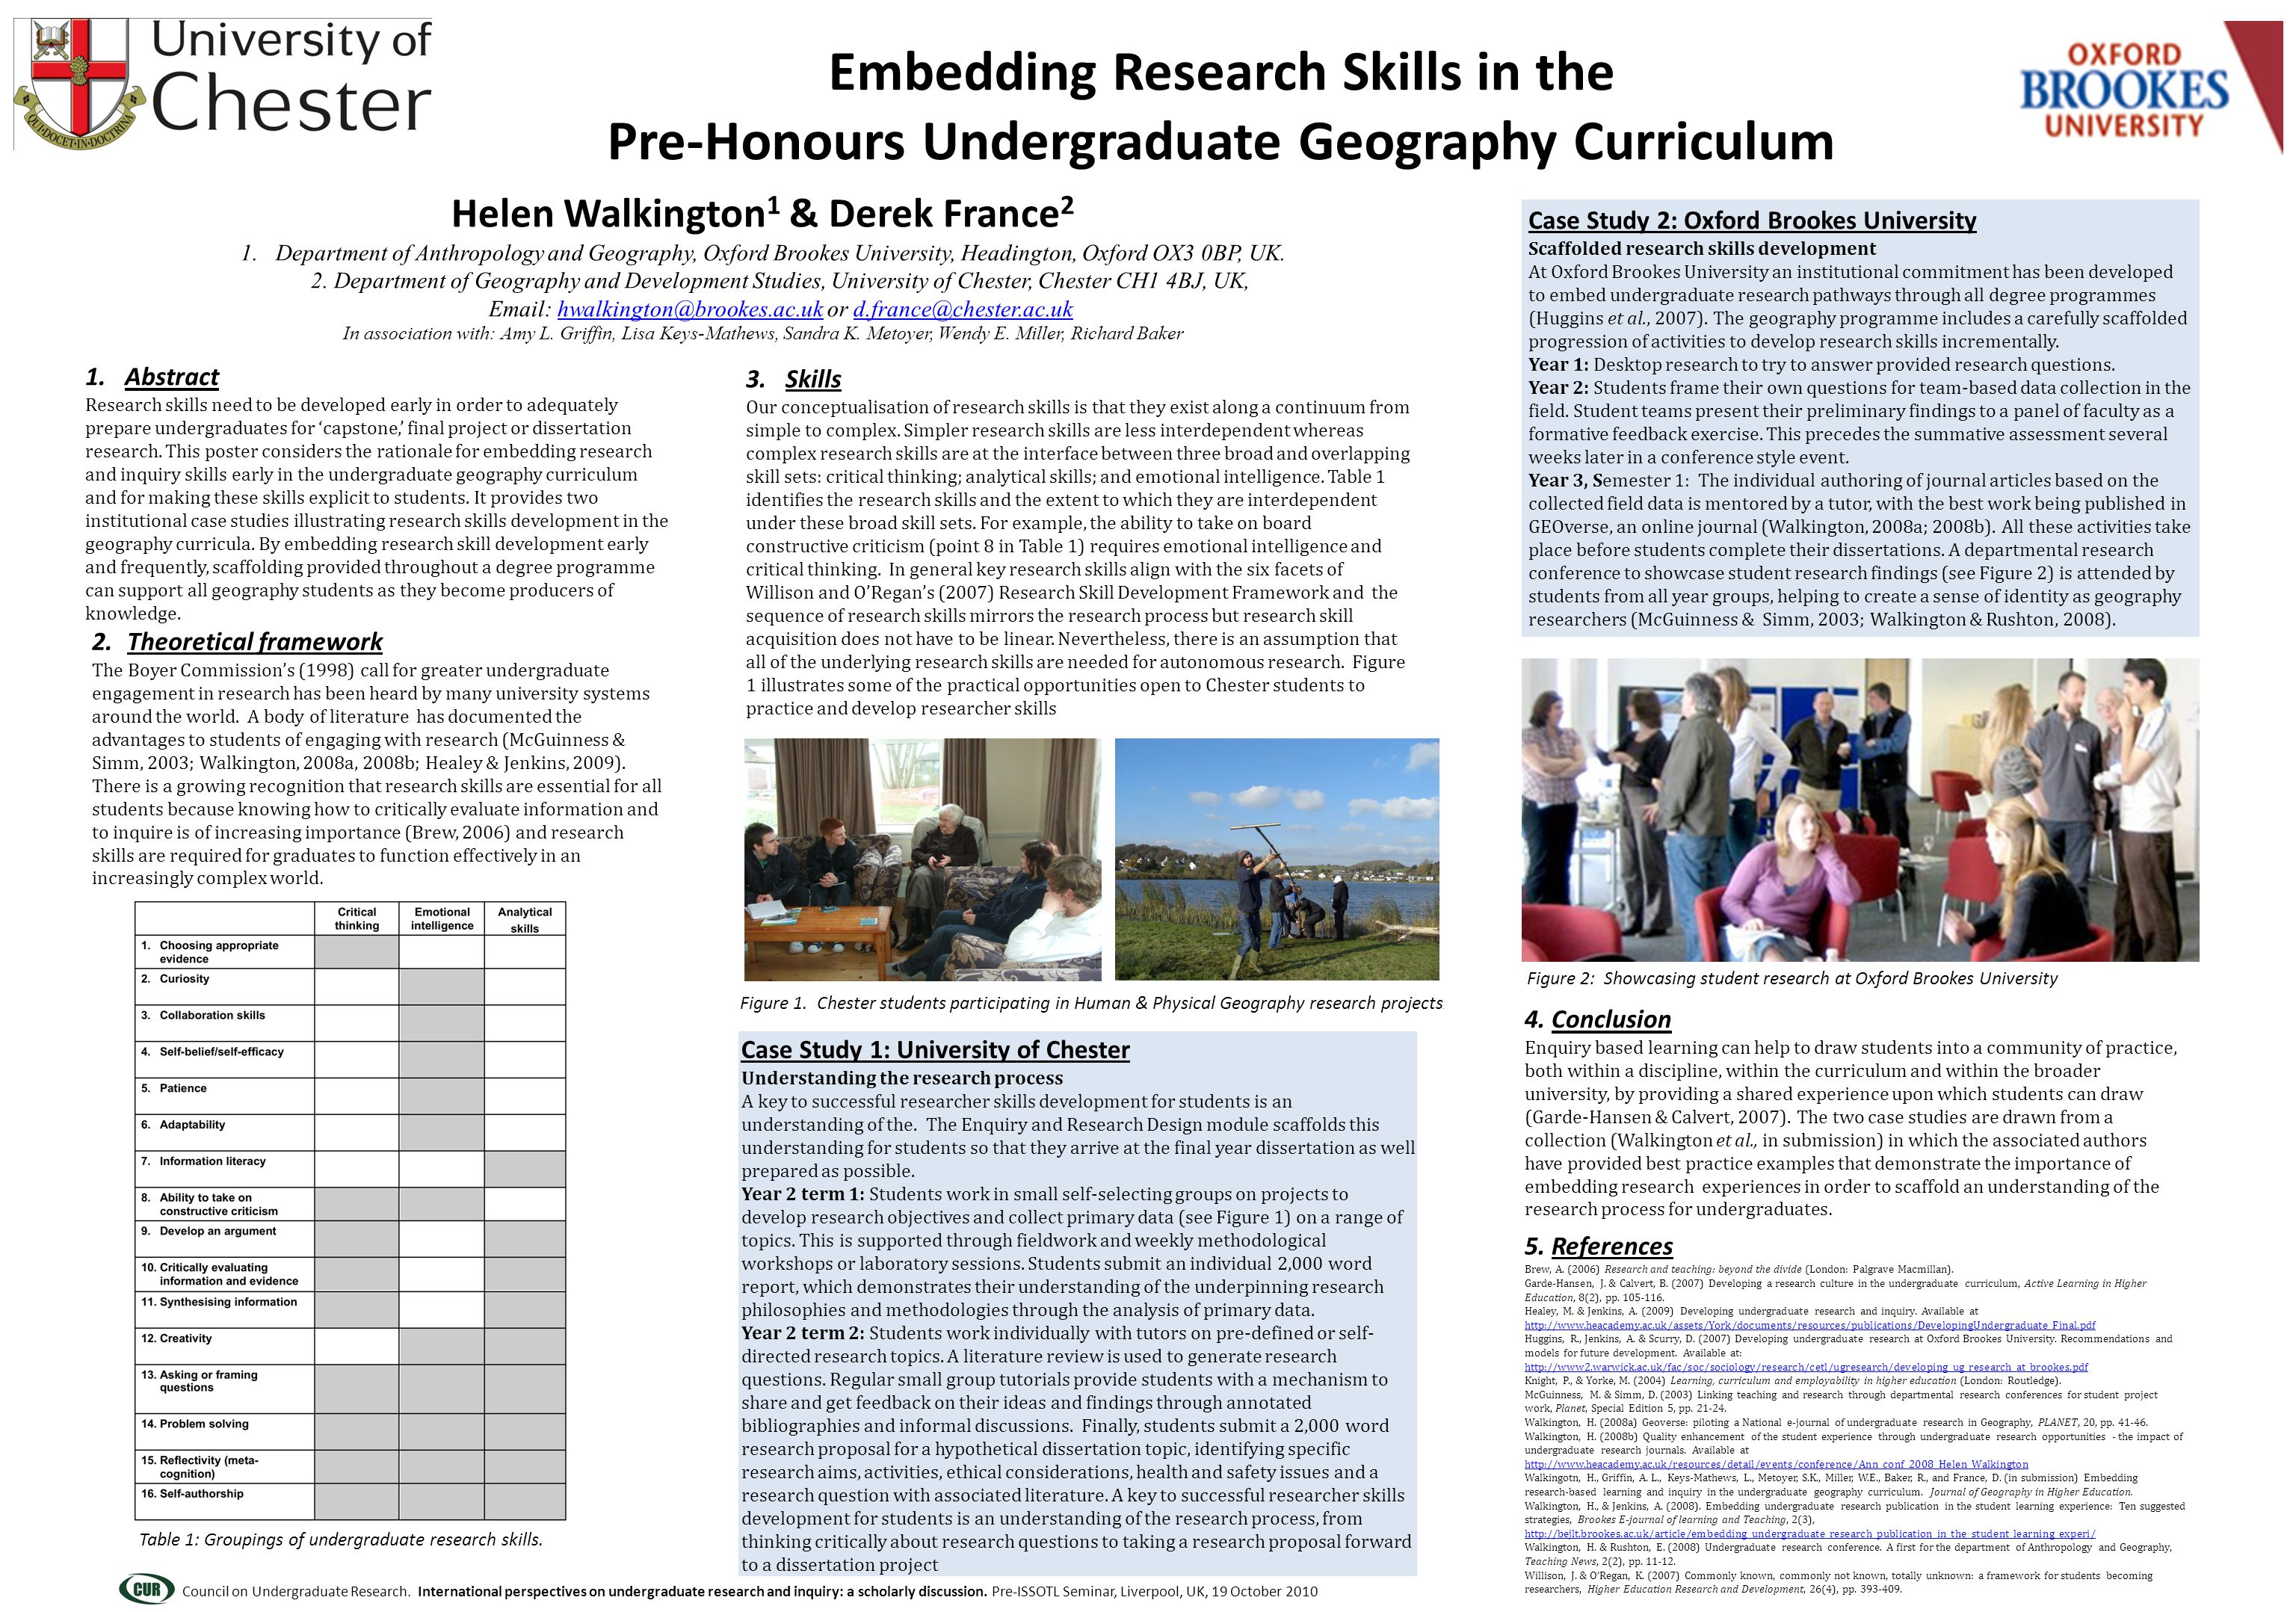 1. Abstract Research skills need to be developed early in order to adequately prepare undergraduates for 'capstone,' final project or dissertation res